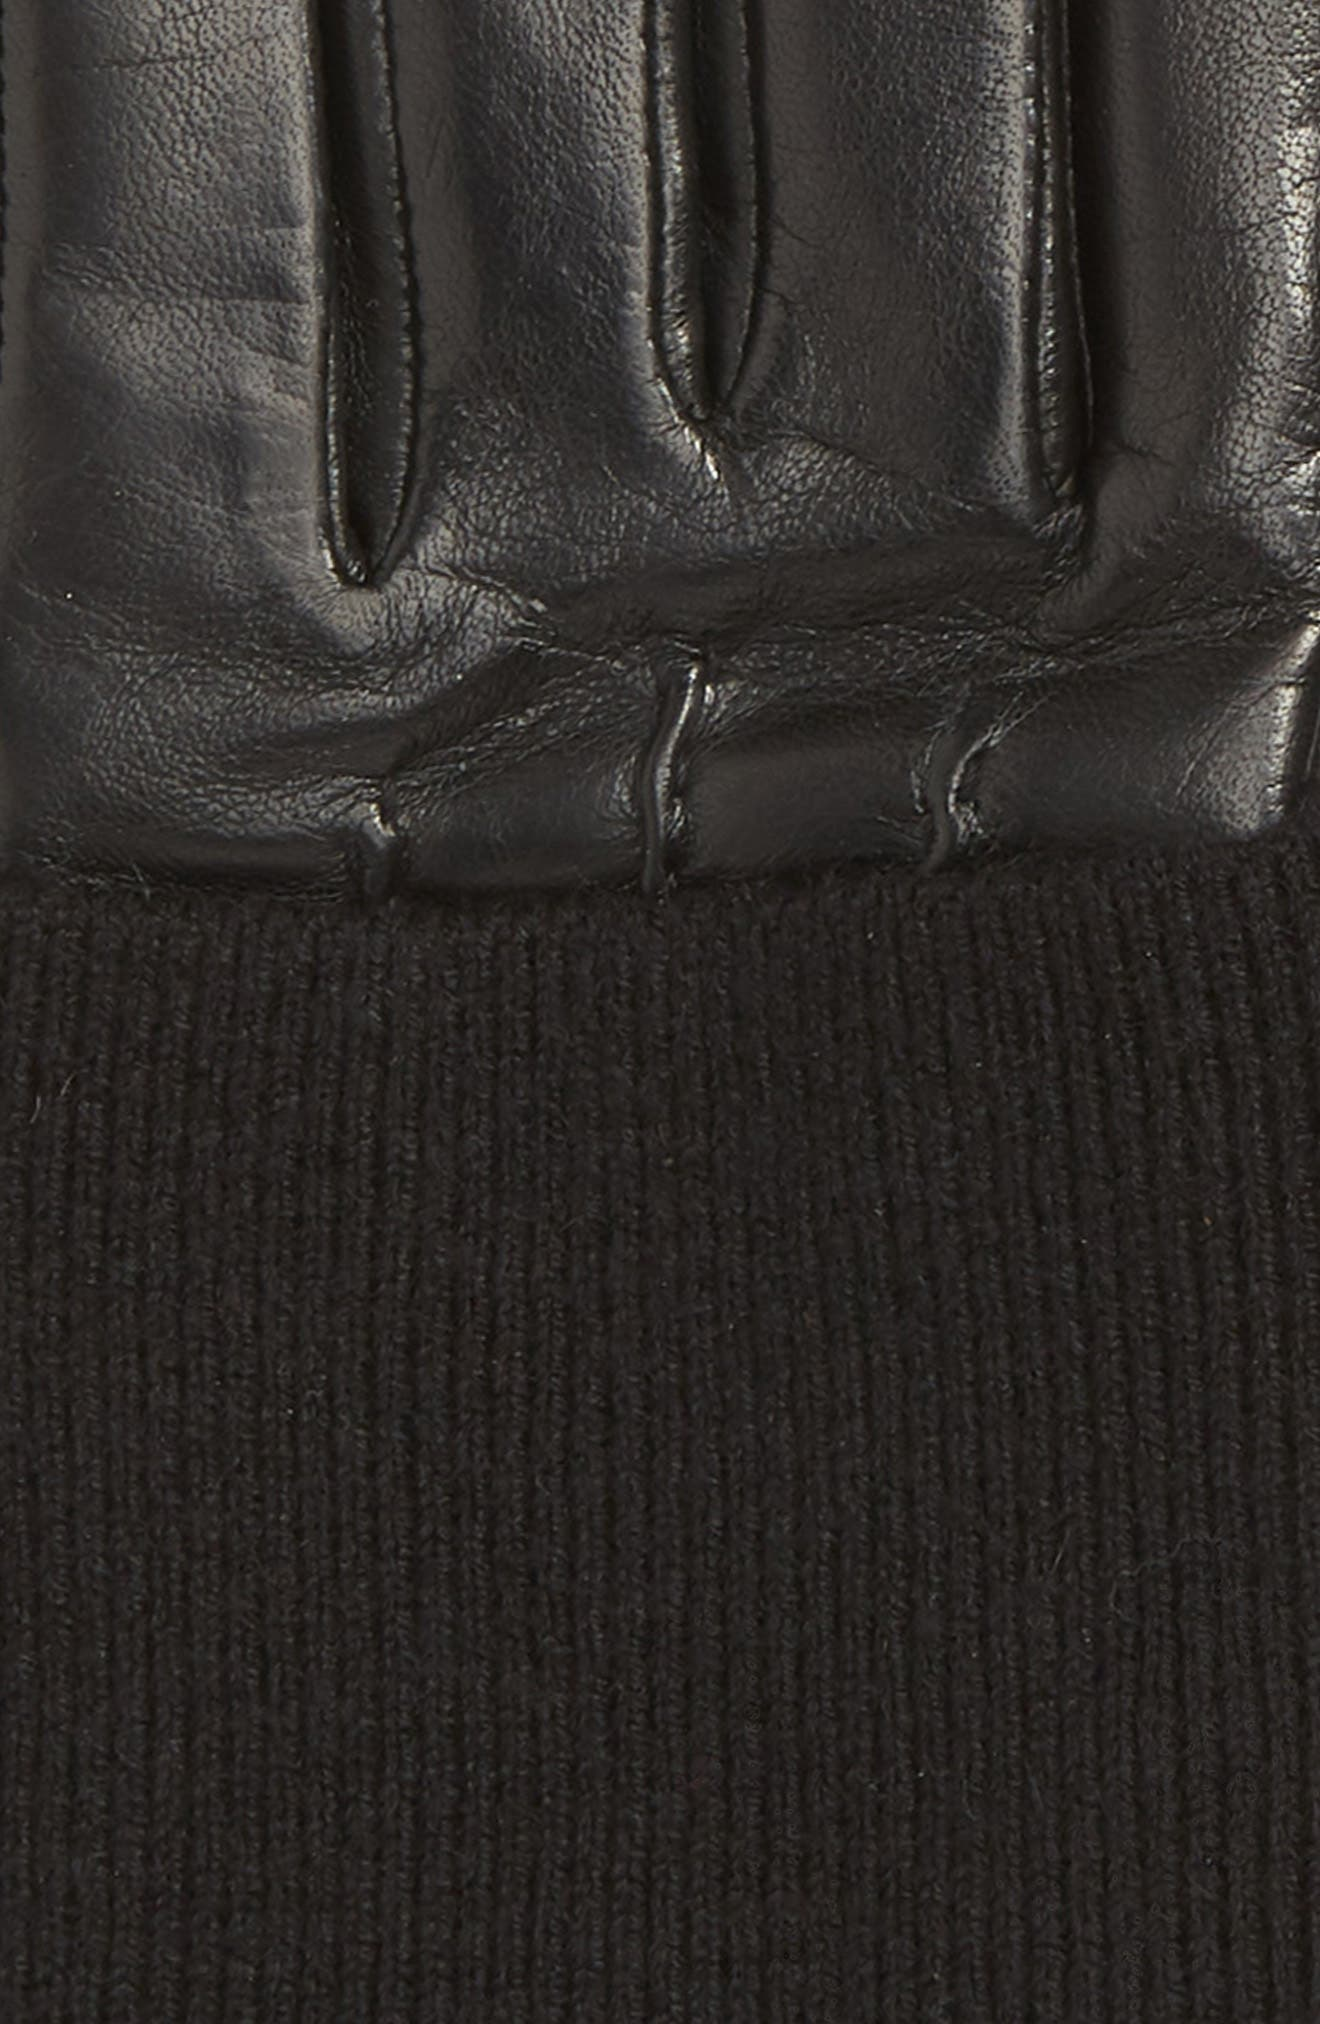 Knit Cuff Lambskin Leather Gloves,                             Alternate thumbnail 2, color,                             001